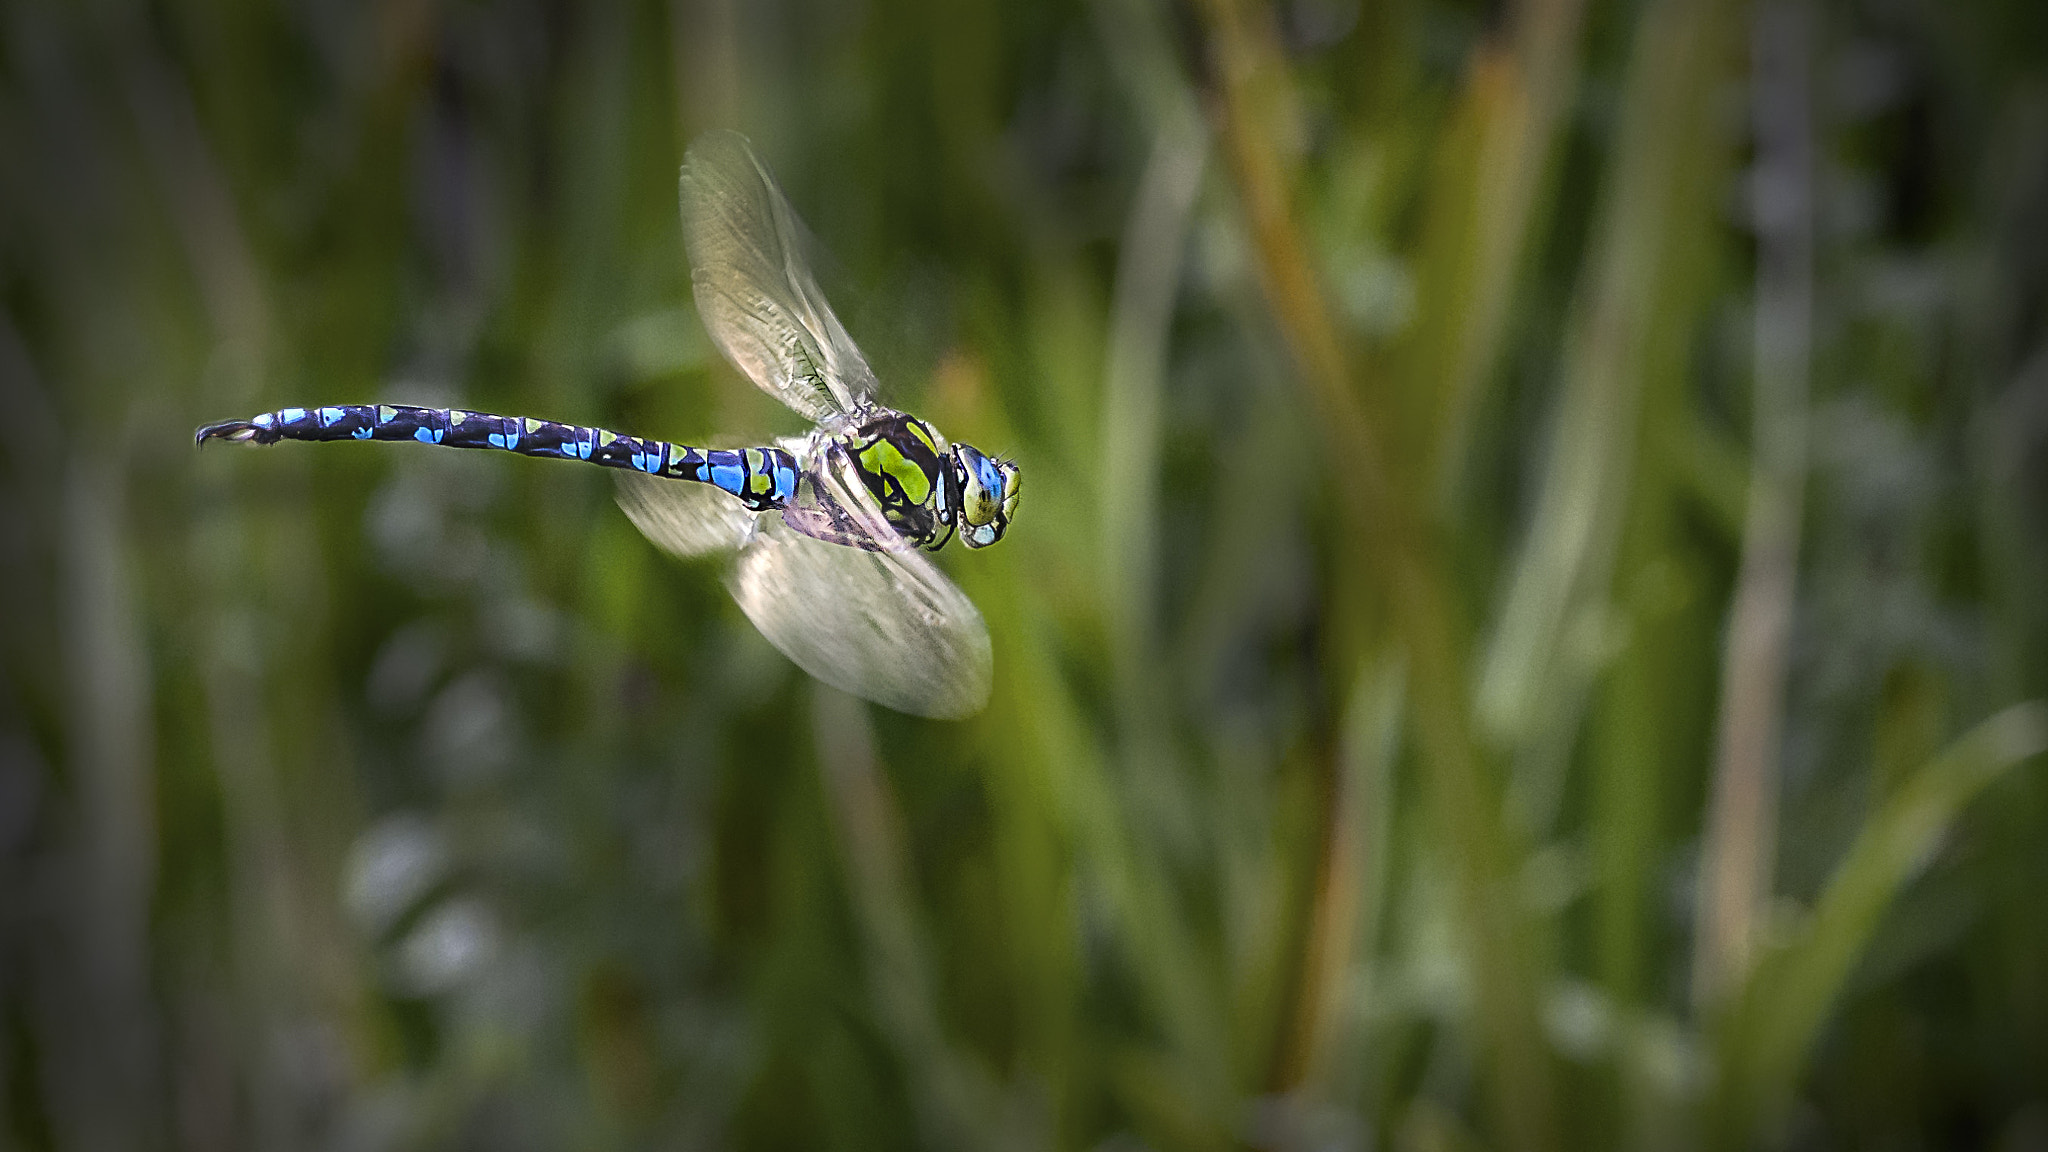 Photograph Flying Dragonfly by Mark Shoesmith on 500px